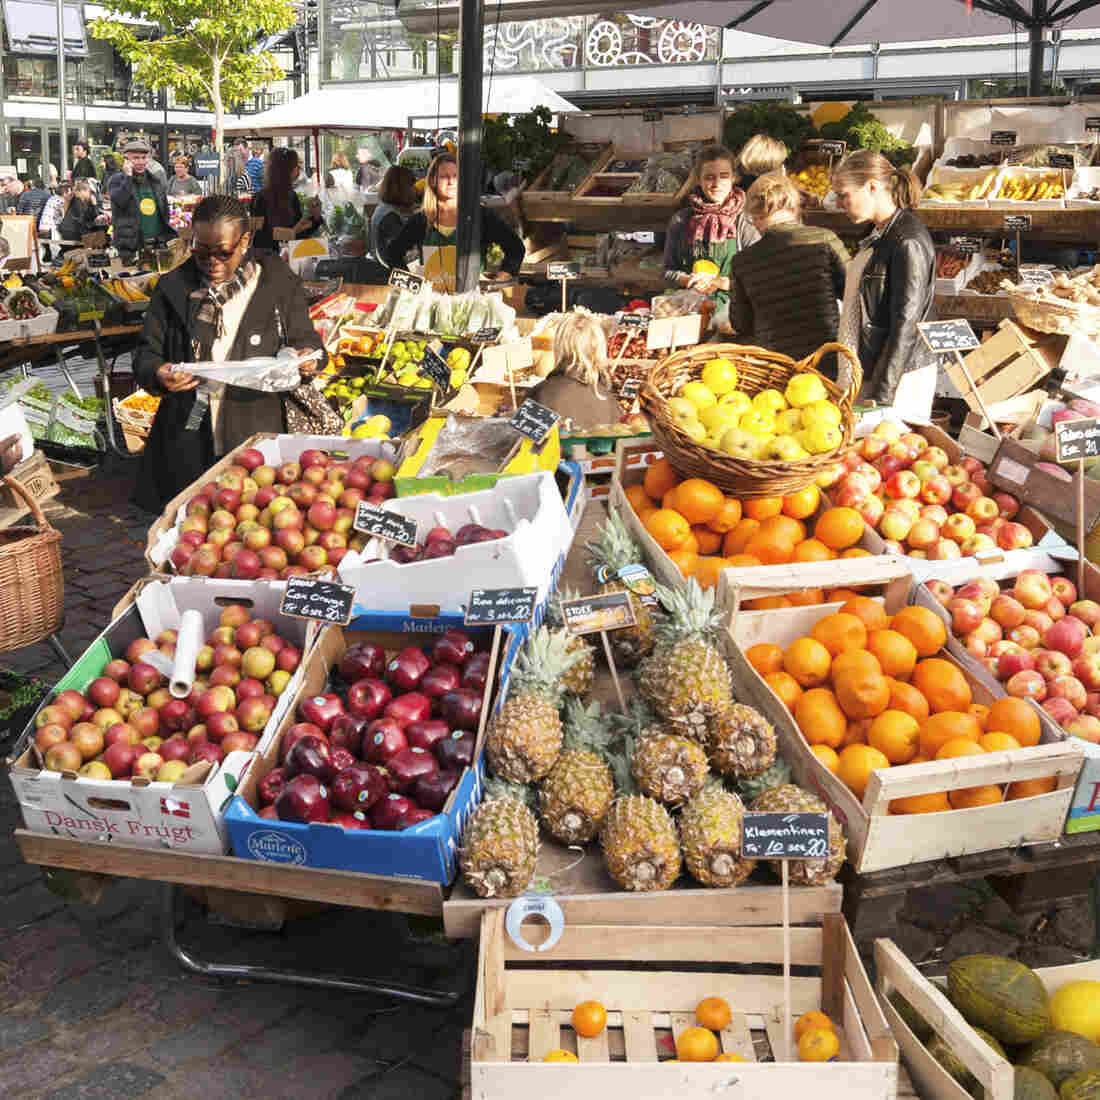 Denmark Might Be Winning The Global Race To Prevent Food Waste